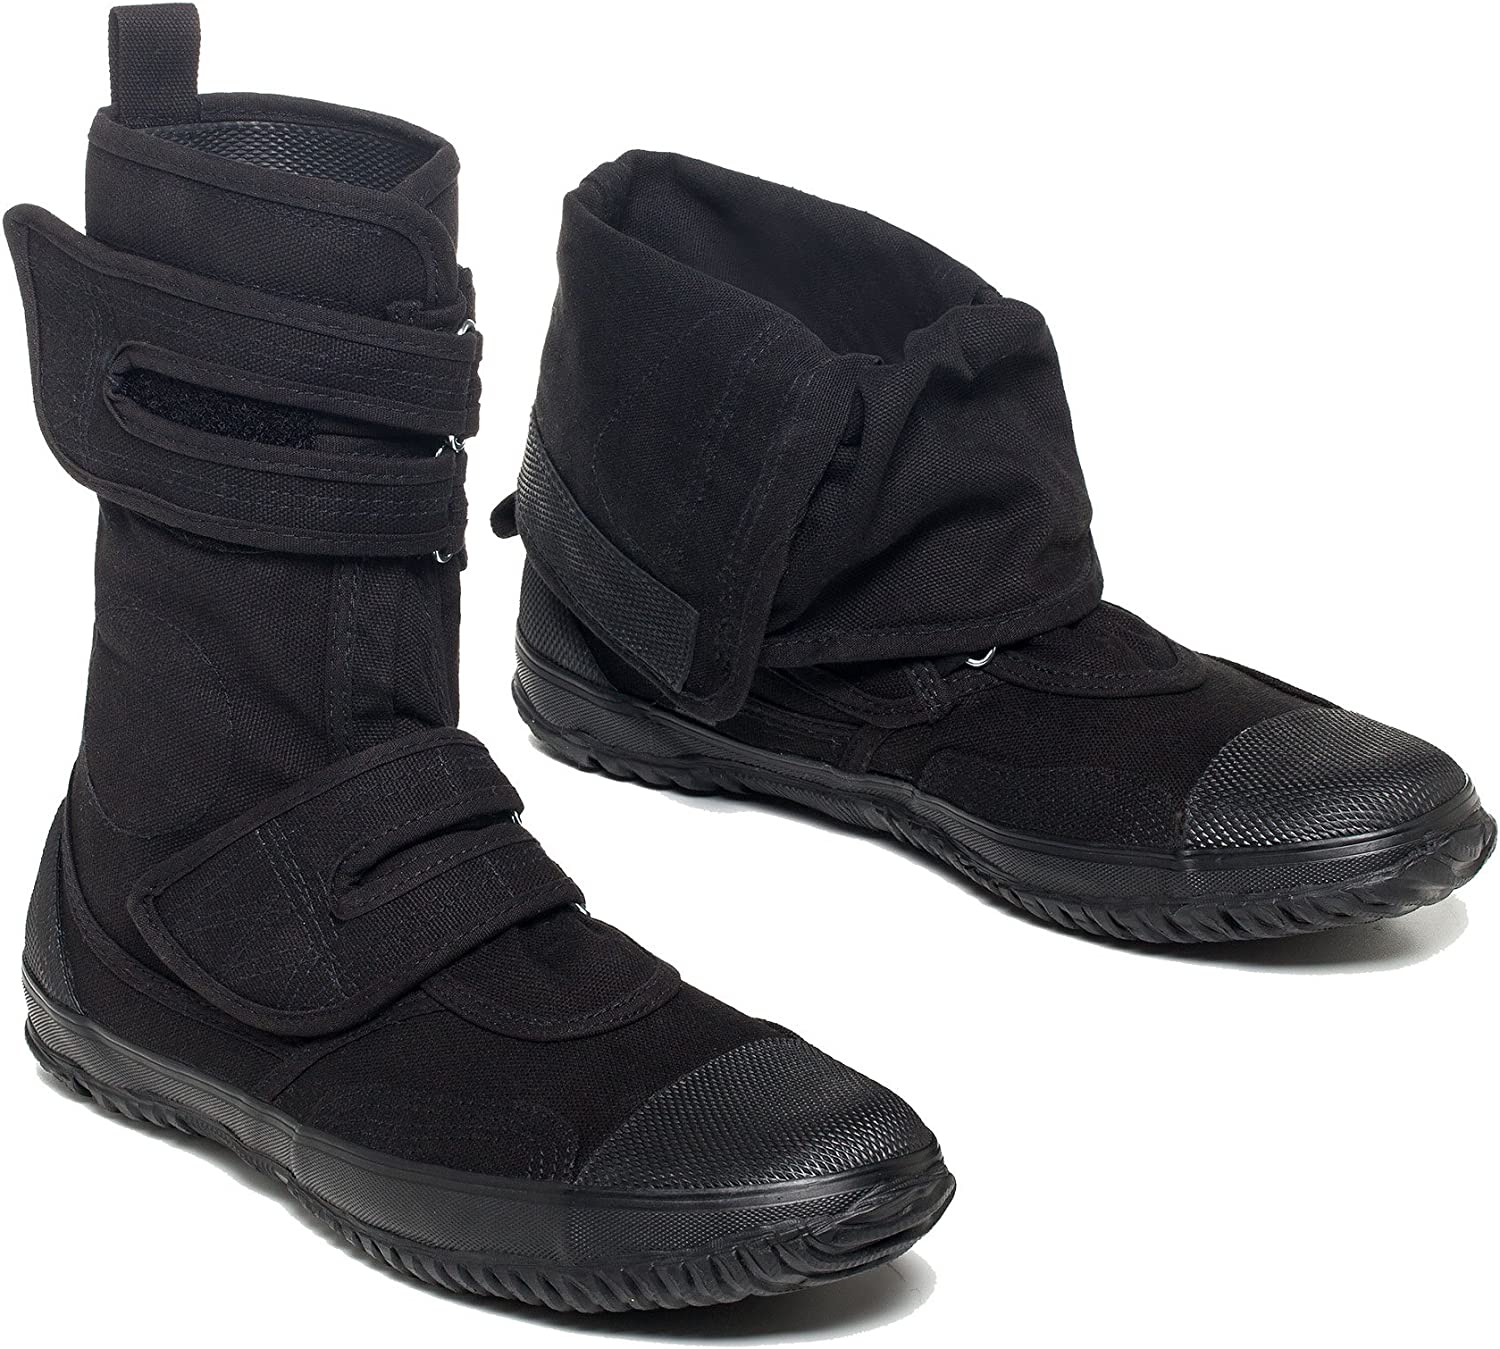 Fugu Maguro Japanese Calf High Industrial Work Boots, Hiking Boots, Fashionable Boots, Foldable, Tactical, Black, for Men